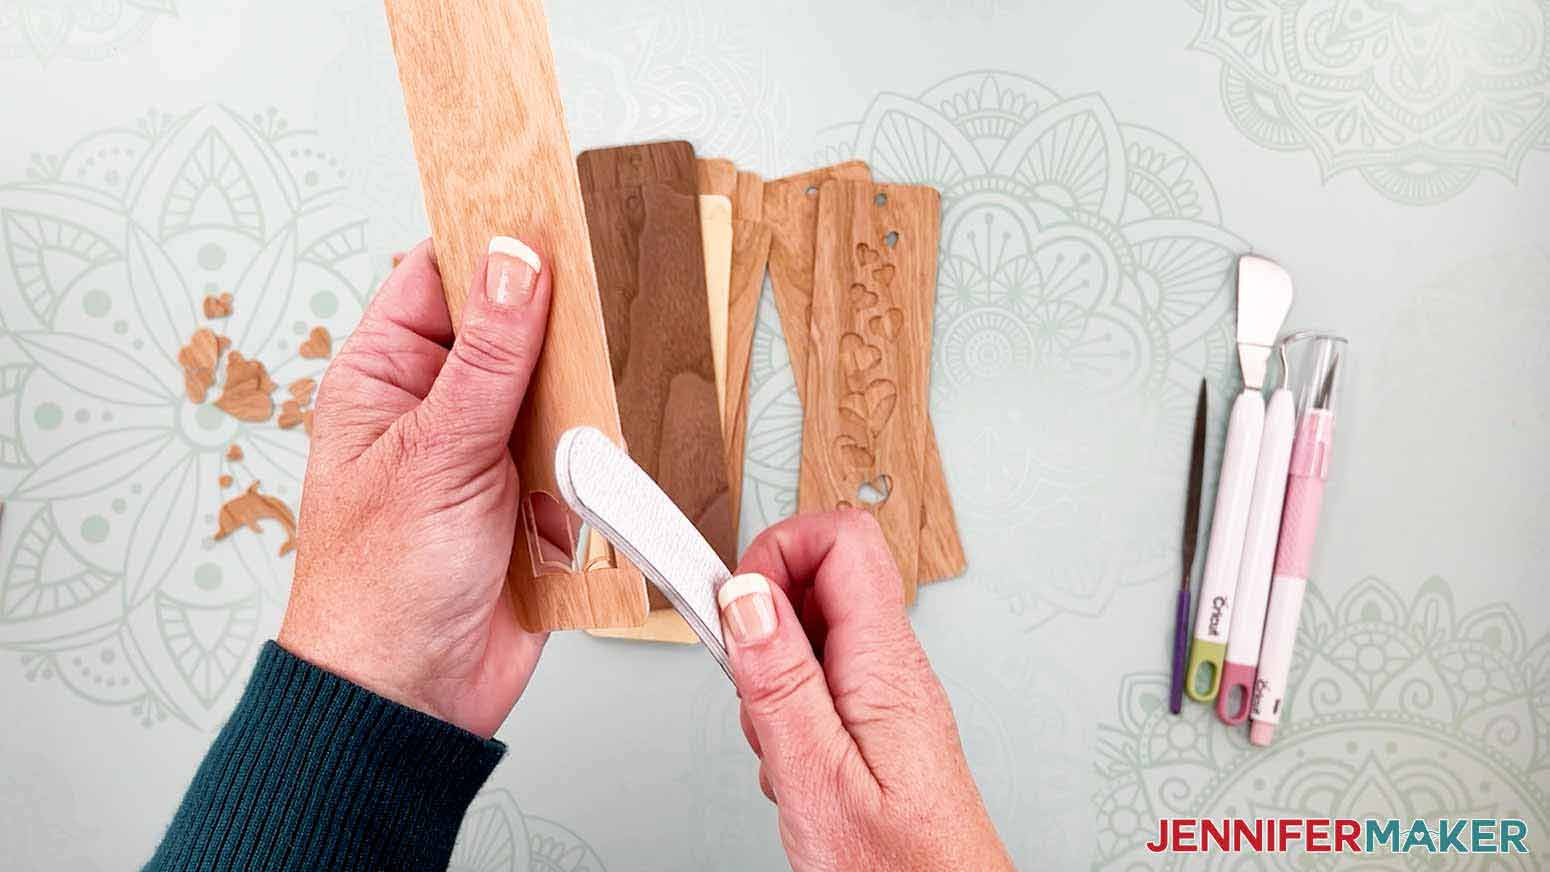 Use a nail file or sand paper to smooth the edges of the bookmark for my wooden bookmarks project